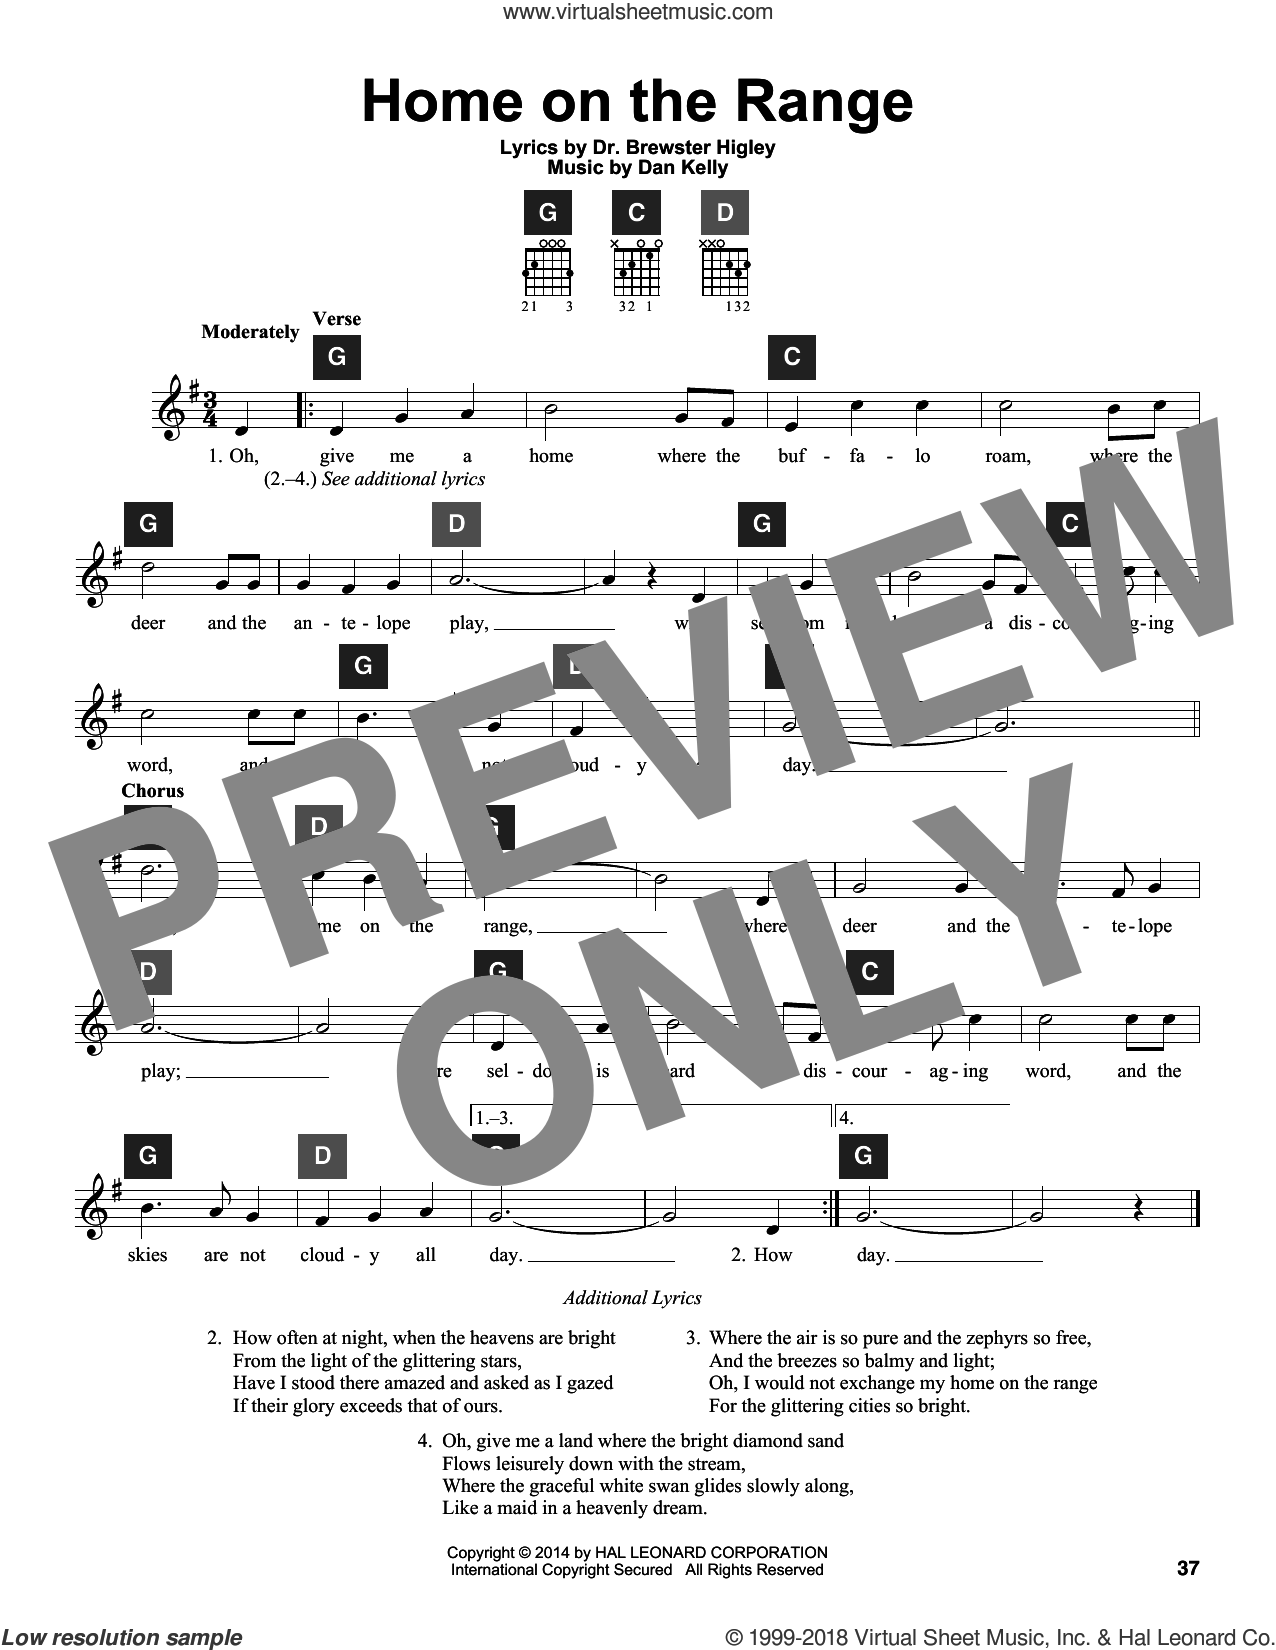 Home On The Range sheet music for guitar solo (ChordBuddy system) by Dan Kelly, Travis Perry and Dr. Brewster Higley, intermediate guitar (ChordBuddy system)